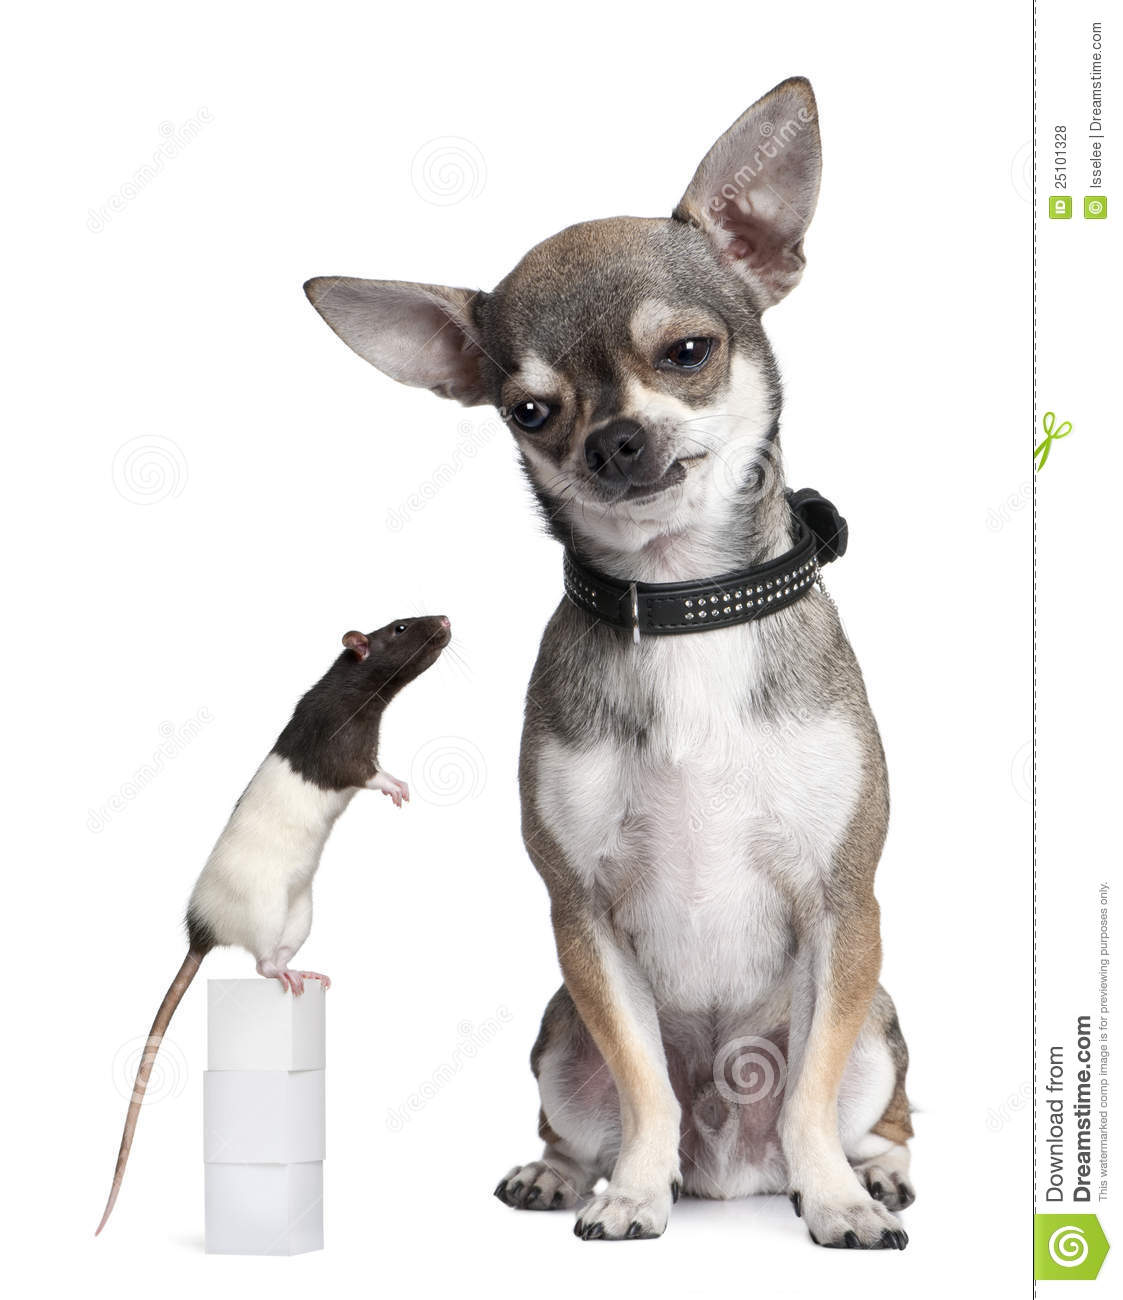 Chihuahua And A Rat Sitting Stock Photo - Image: 25101328